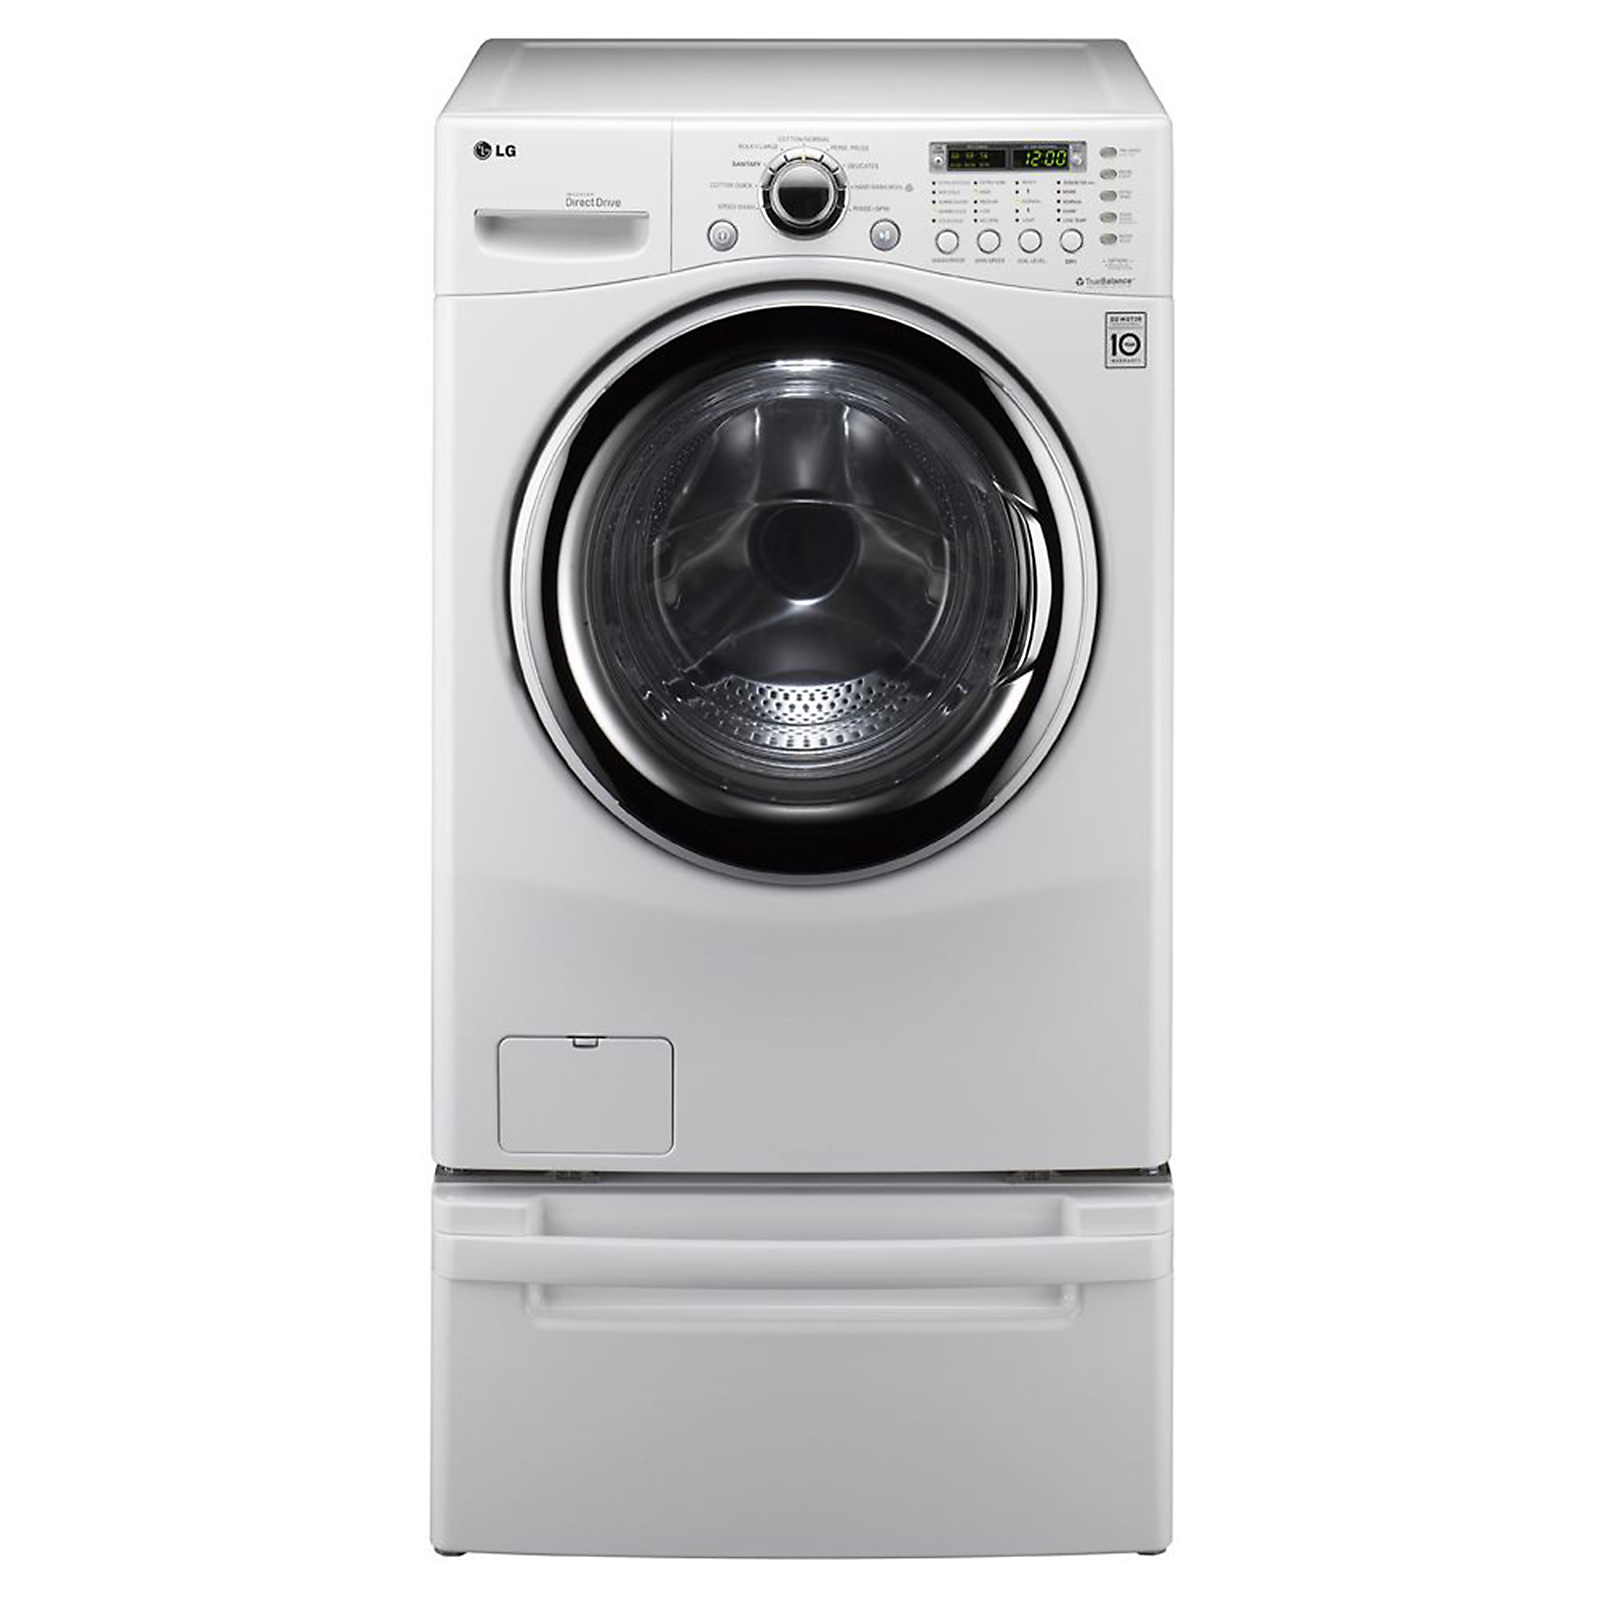 LG Combination Washer/Dryer, White